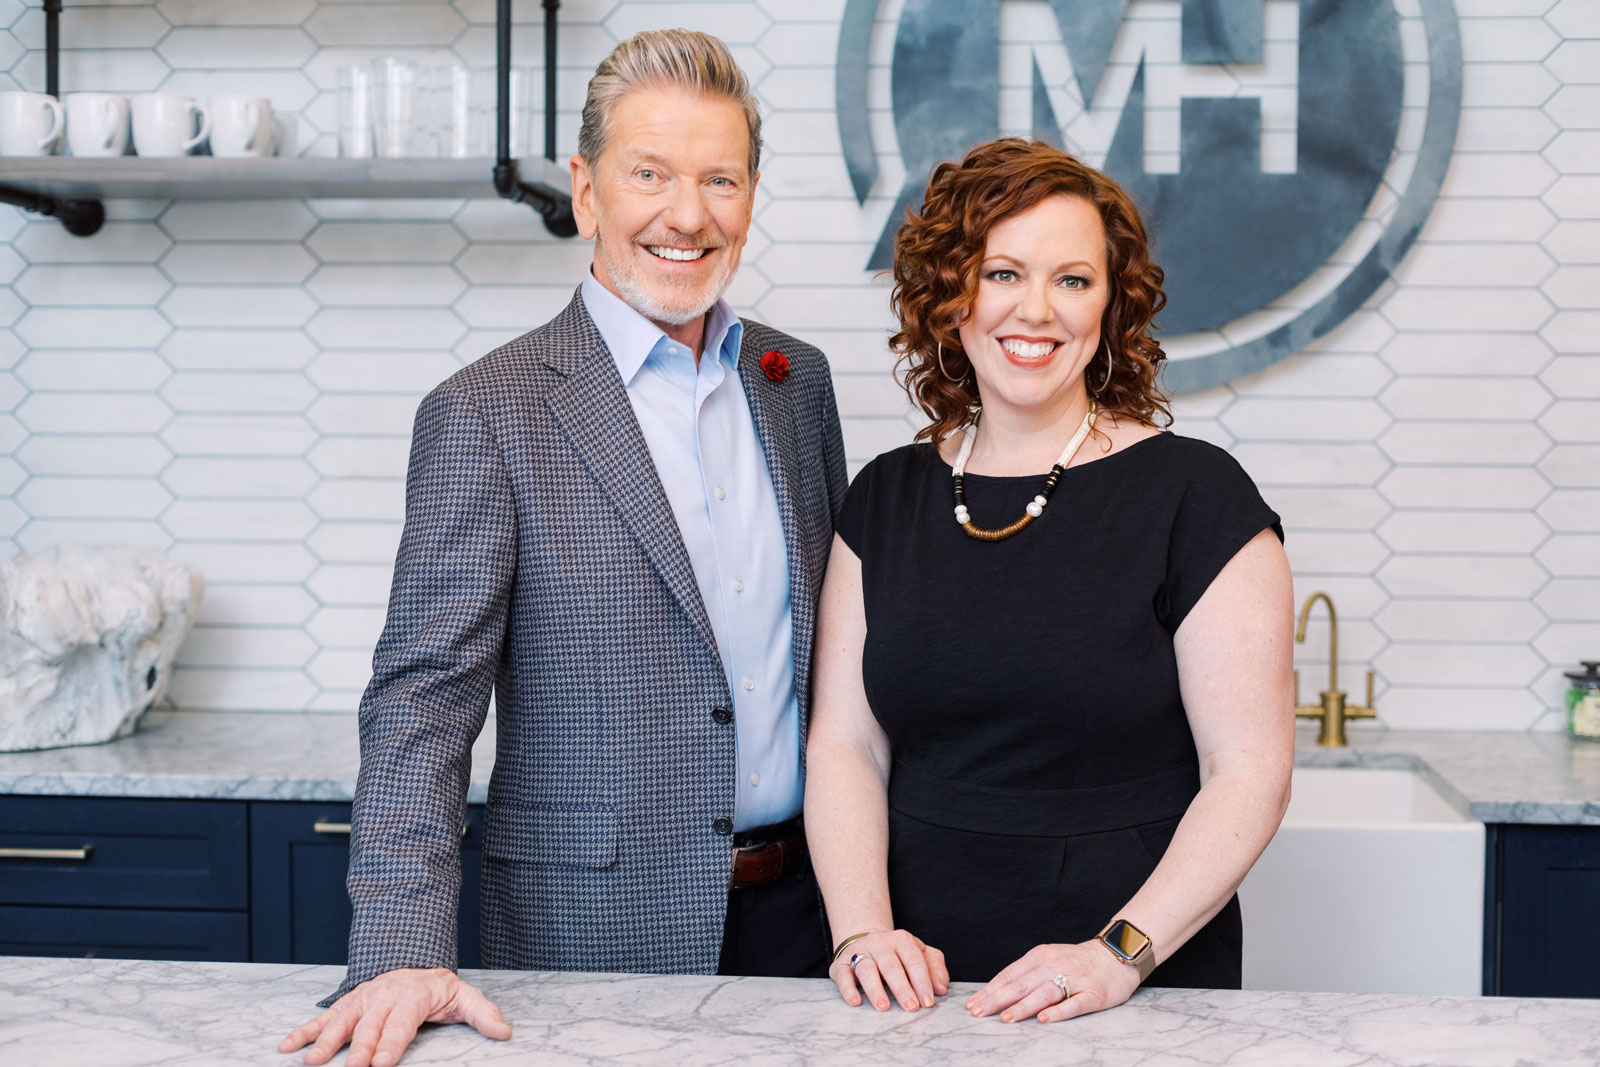 Authors Michael Hyatt and Megan Hyatt Miller